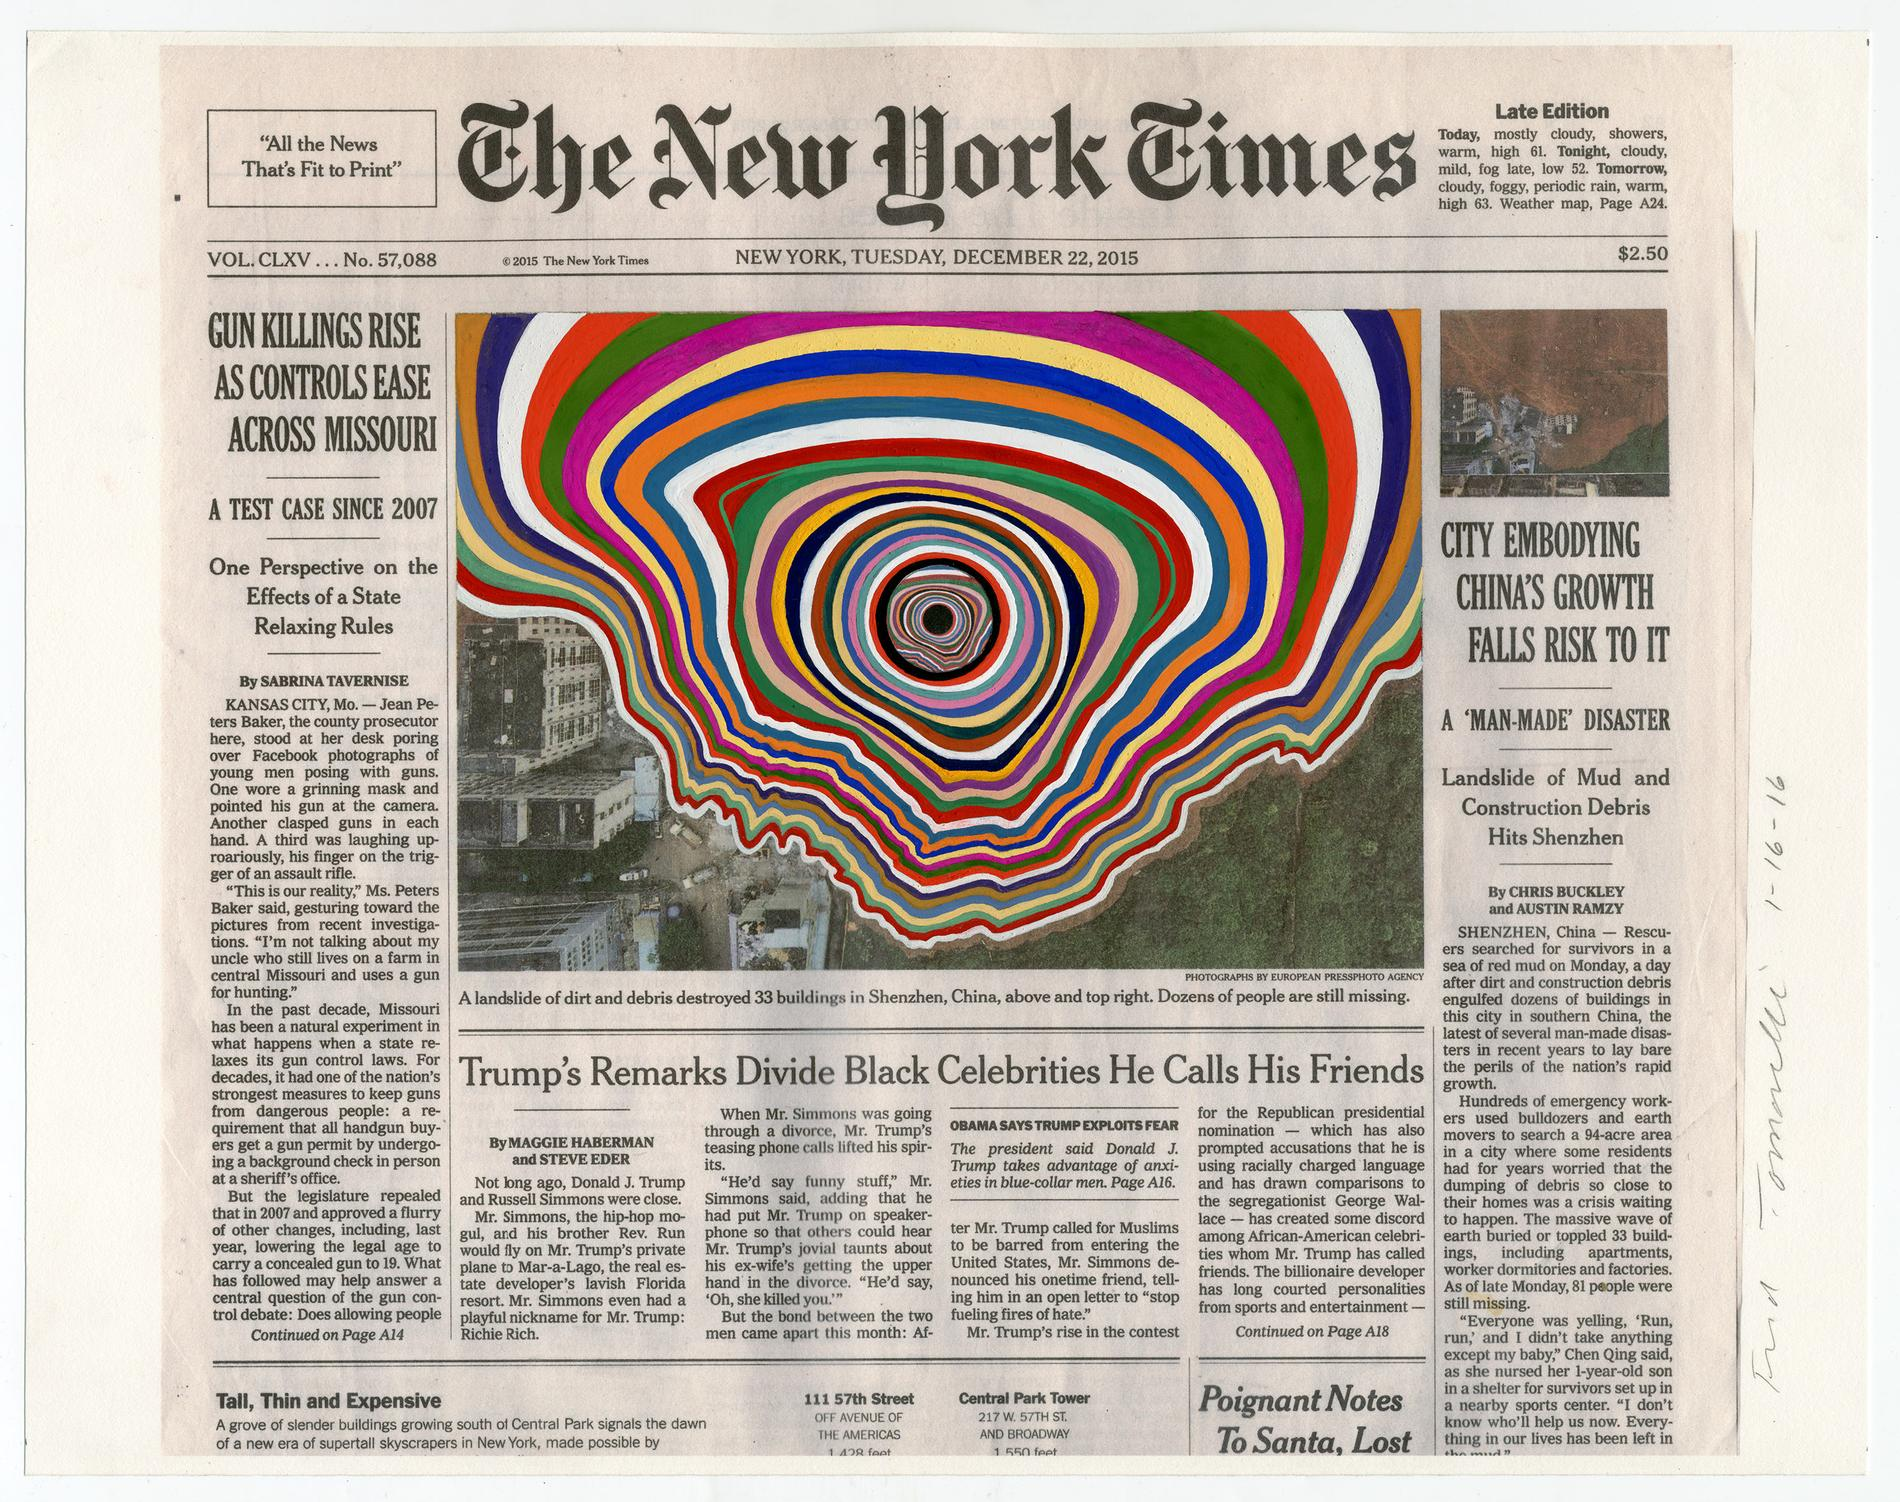 Creative Collages of the NY Times Front Pages (7 pics)